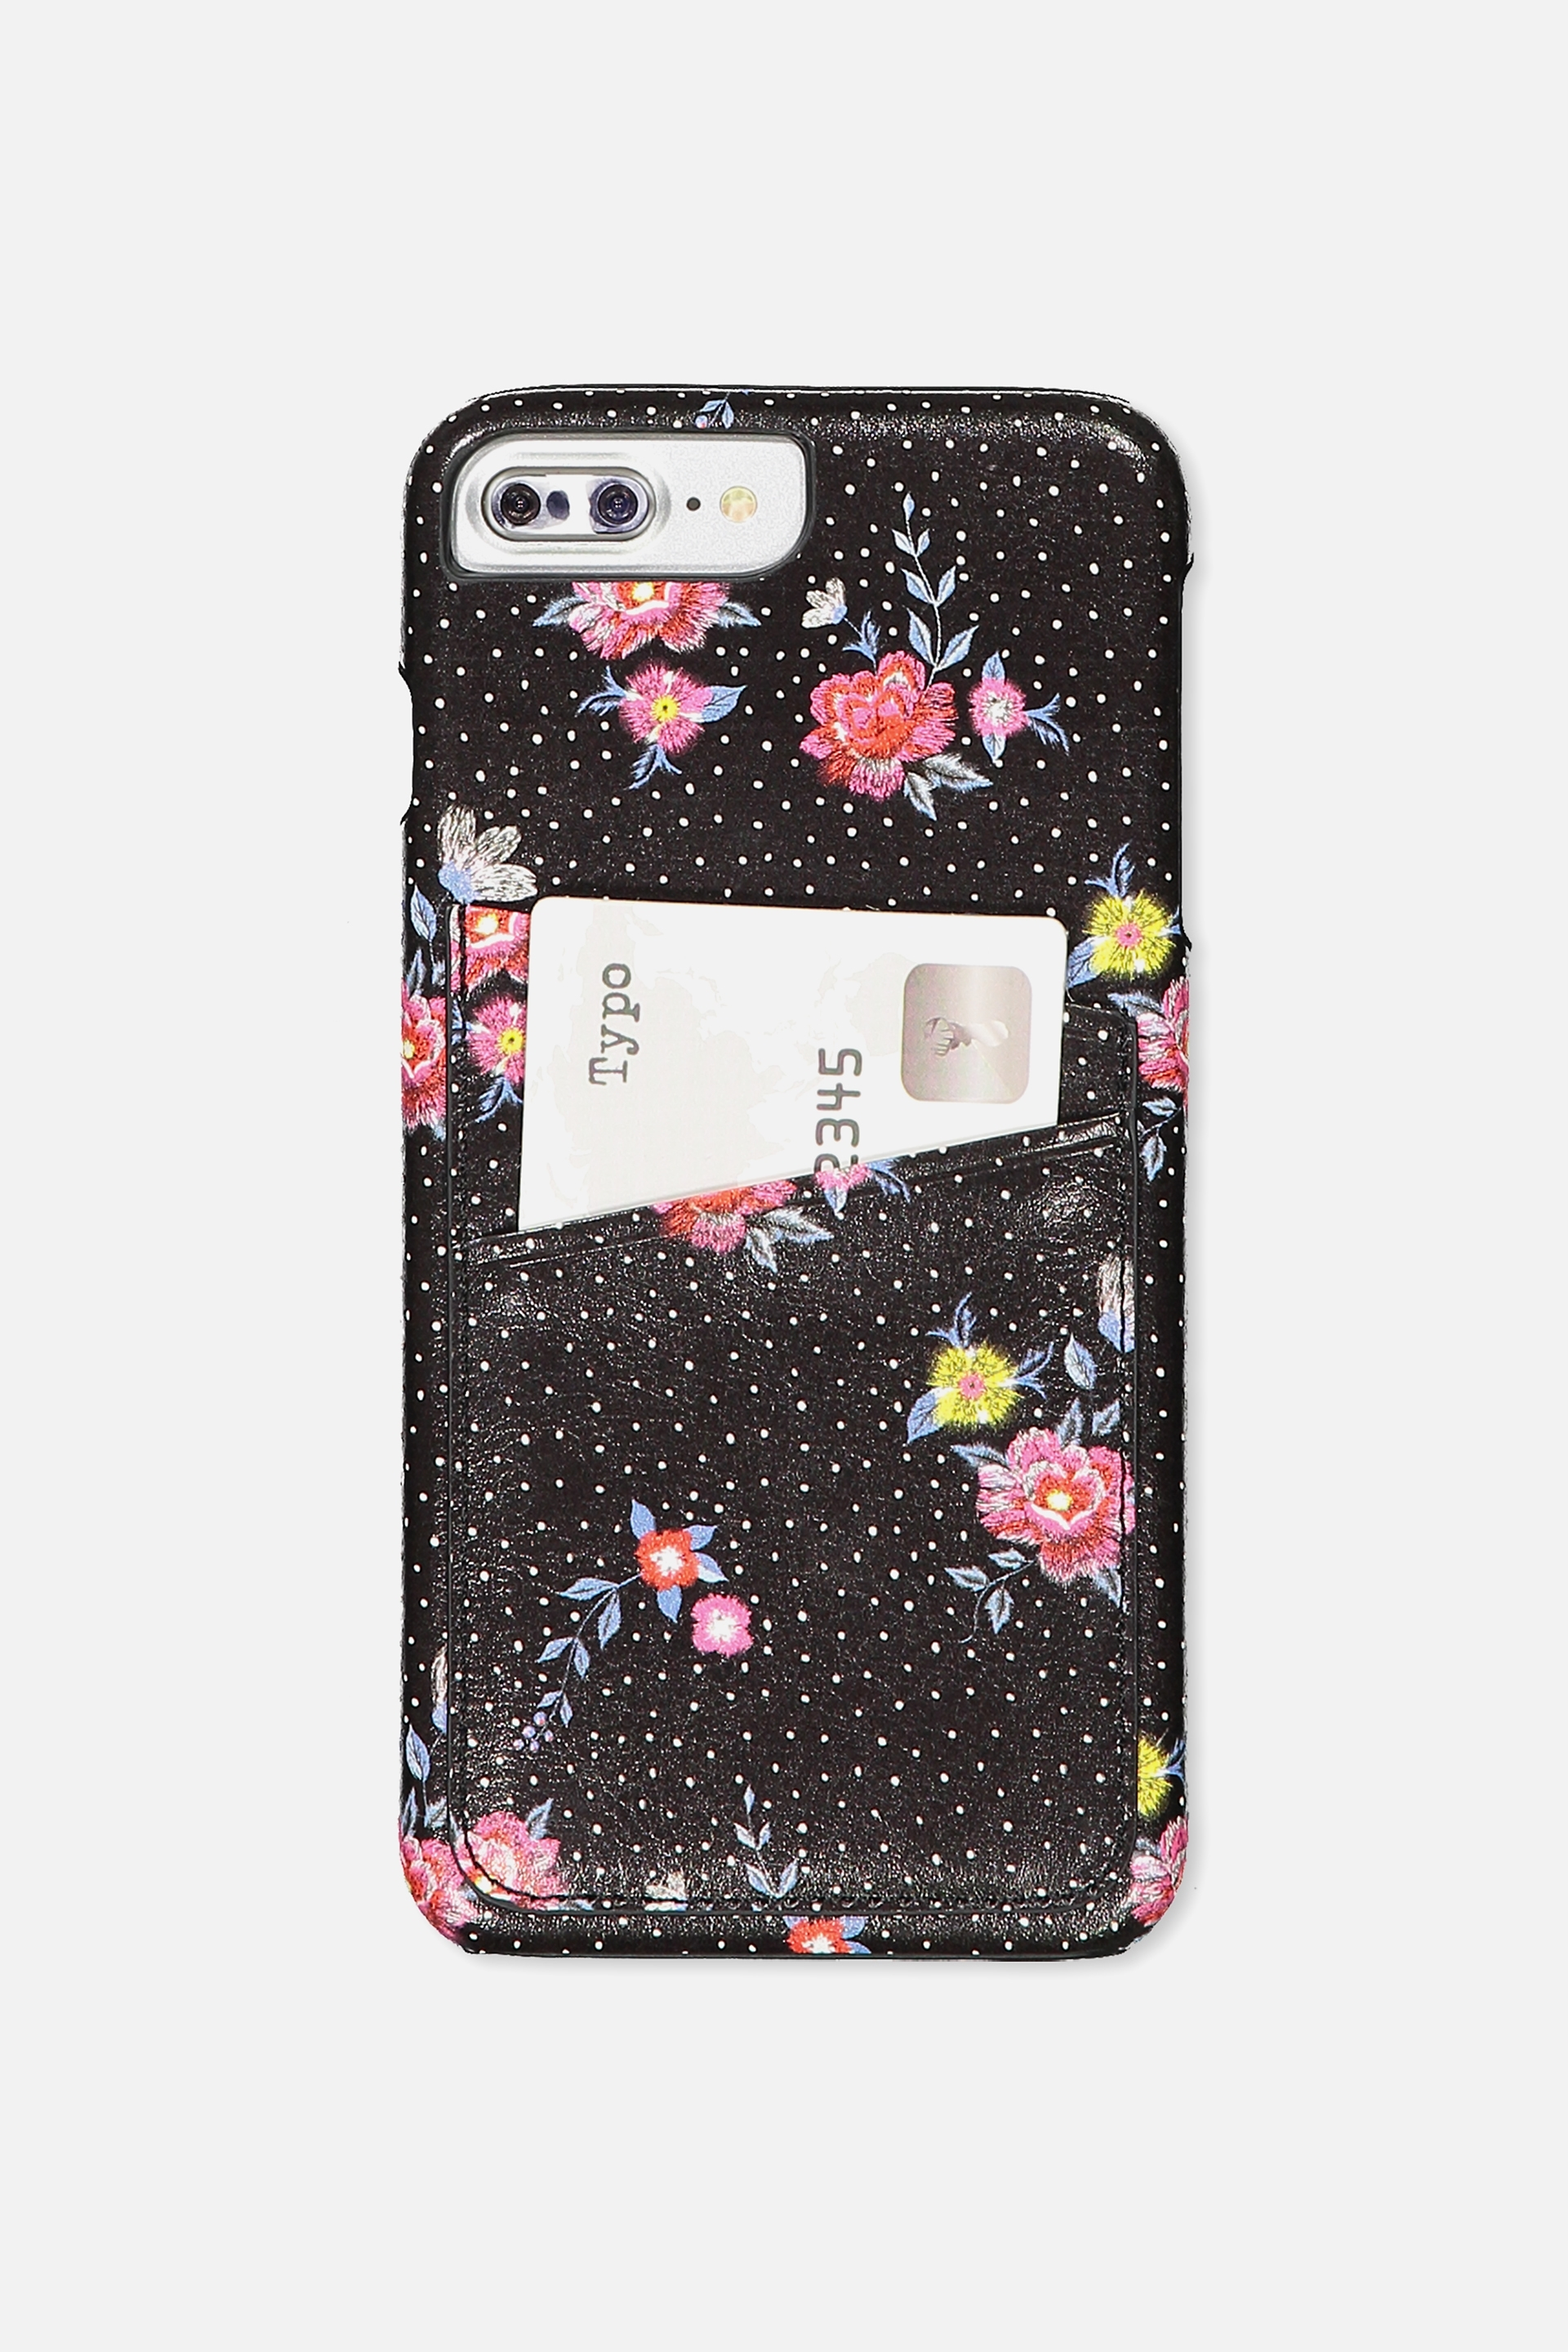 Typo - The Cardholder Phone Cover 6,7,8 Plus - Black dotty floral 9353699245810